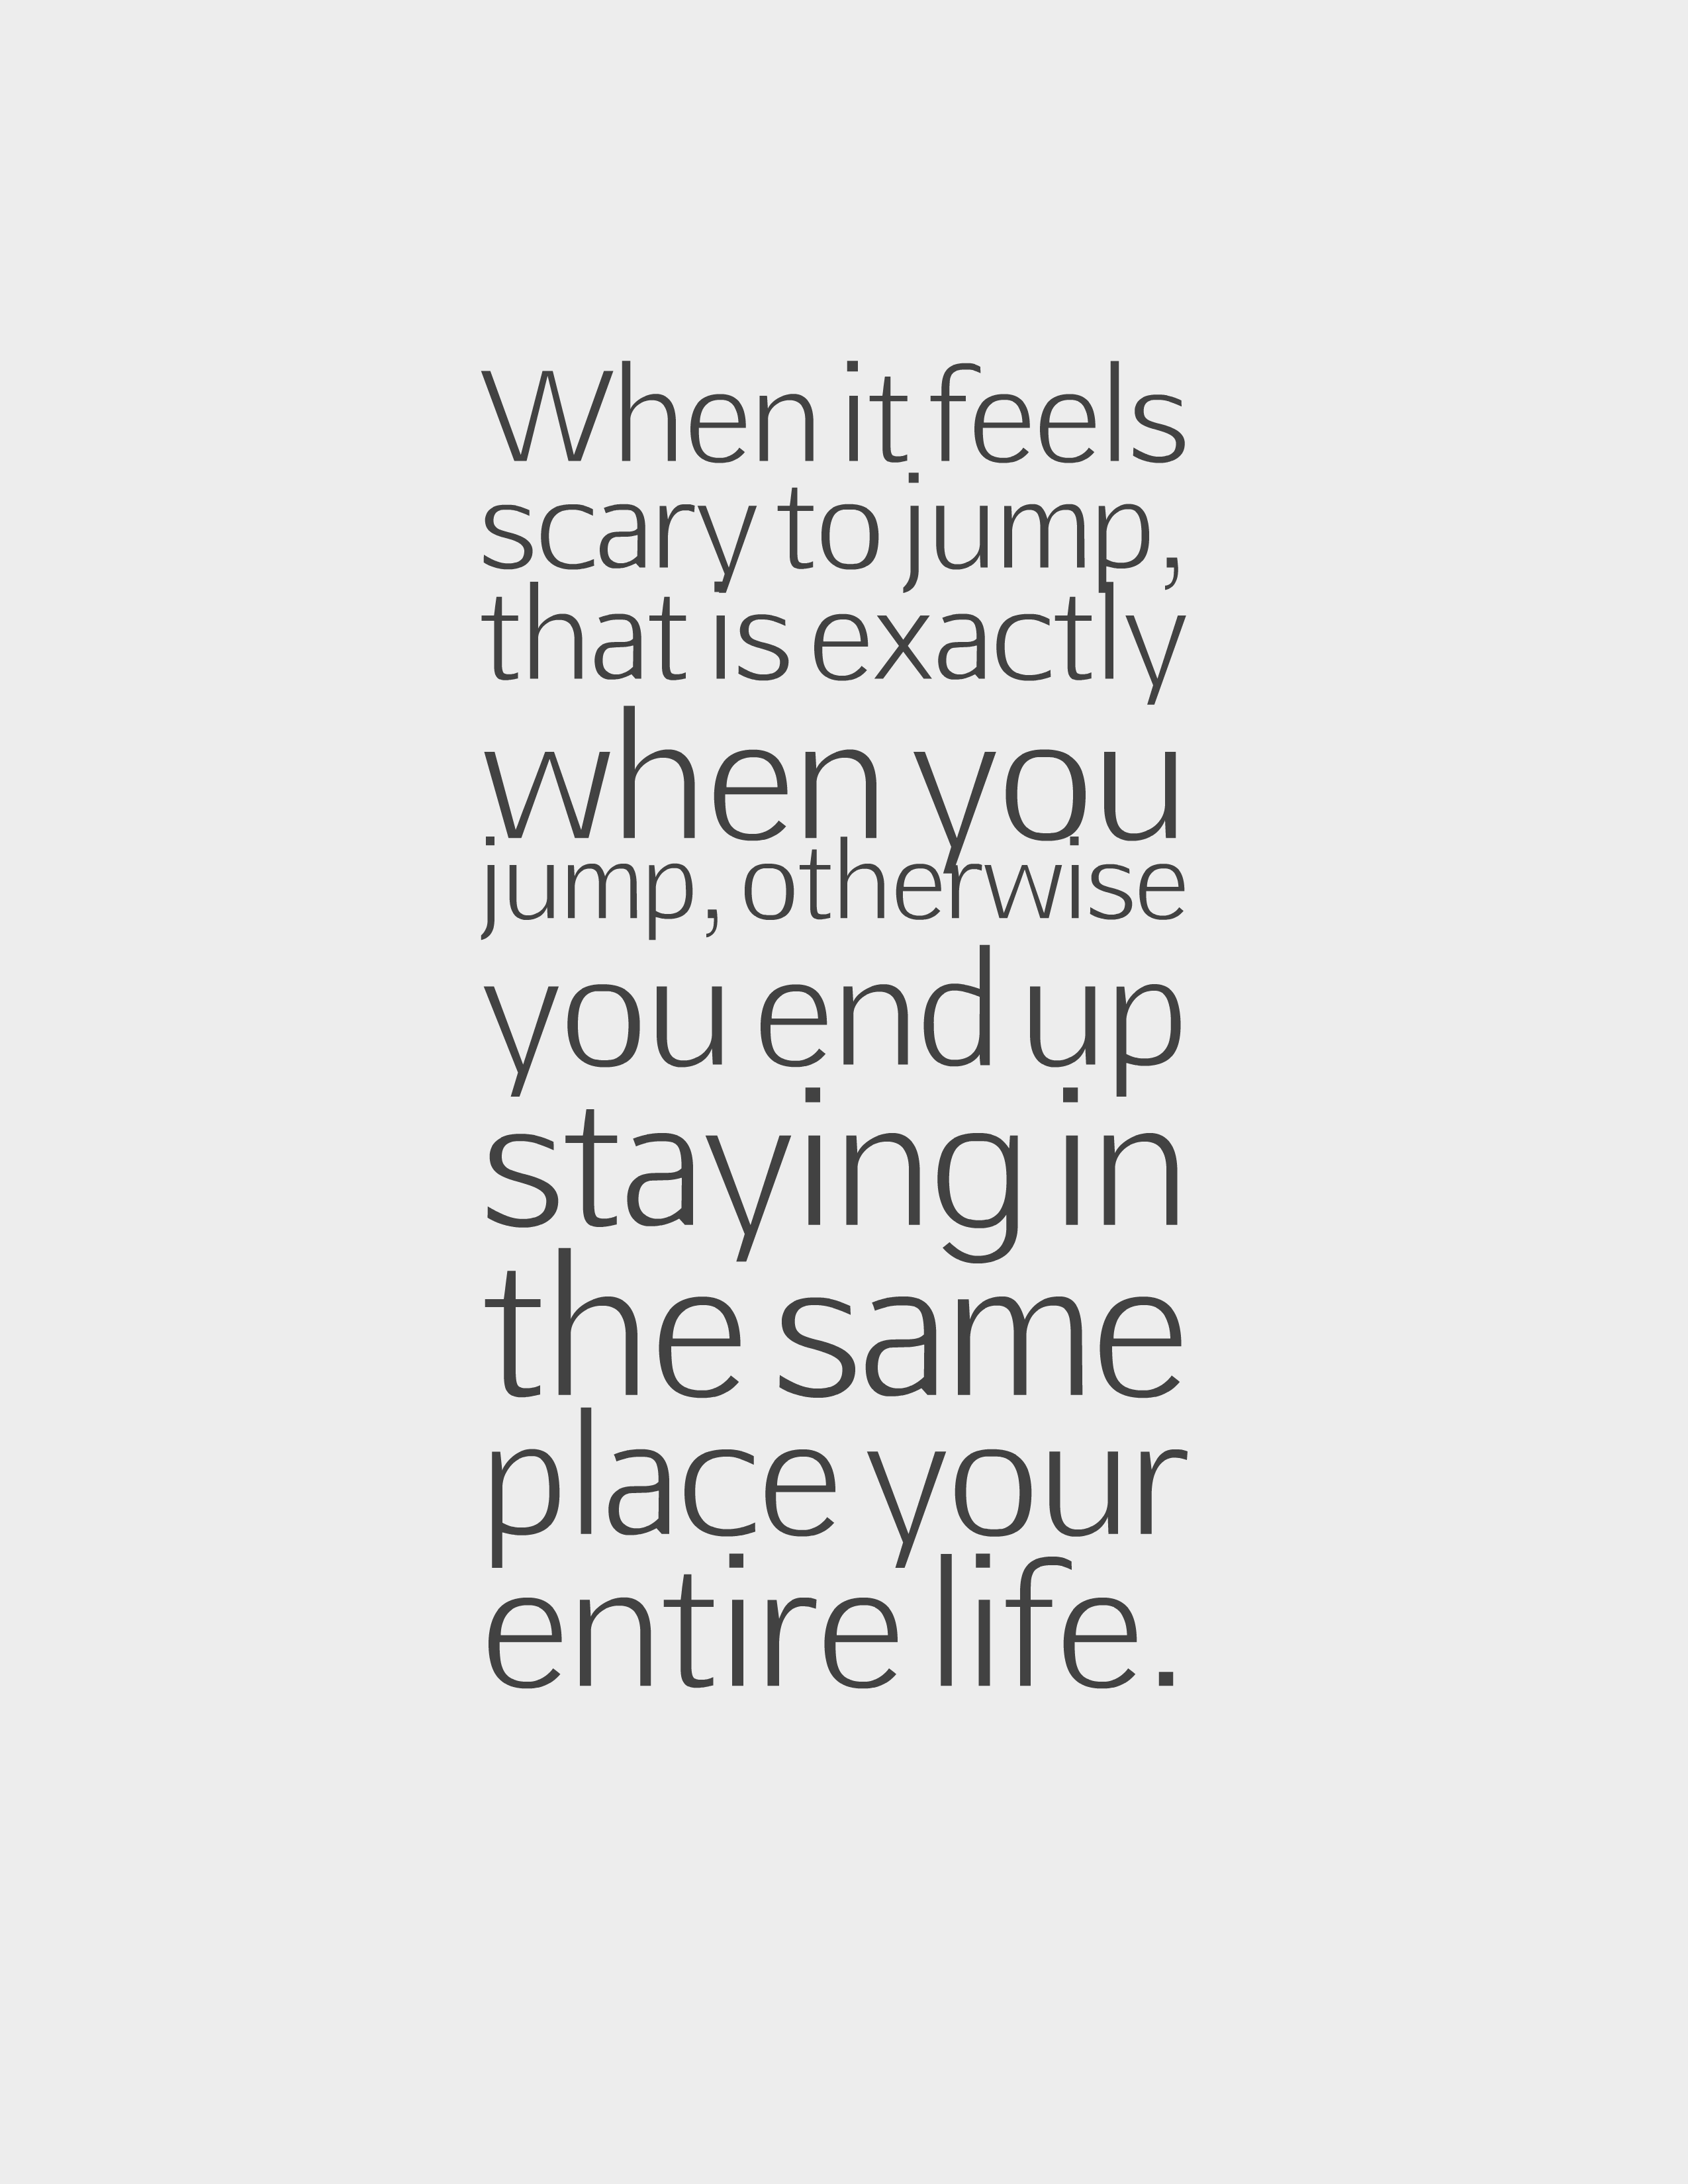 When It Feels Scary To Jump That Is Exactly When You Jump Otherwise You End Up Staying In The Same Place Yo New Job Quotes Leaving A Job Quotes Job Quotes